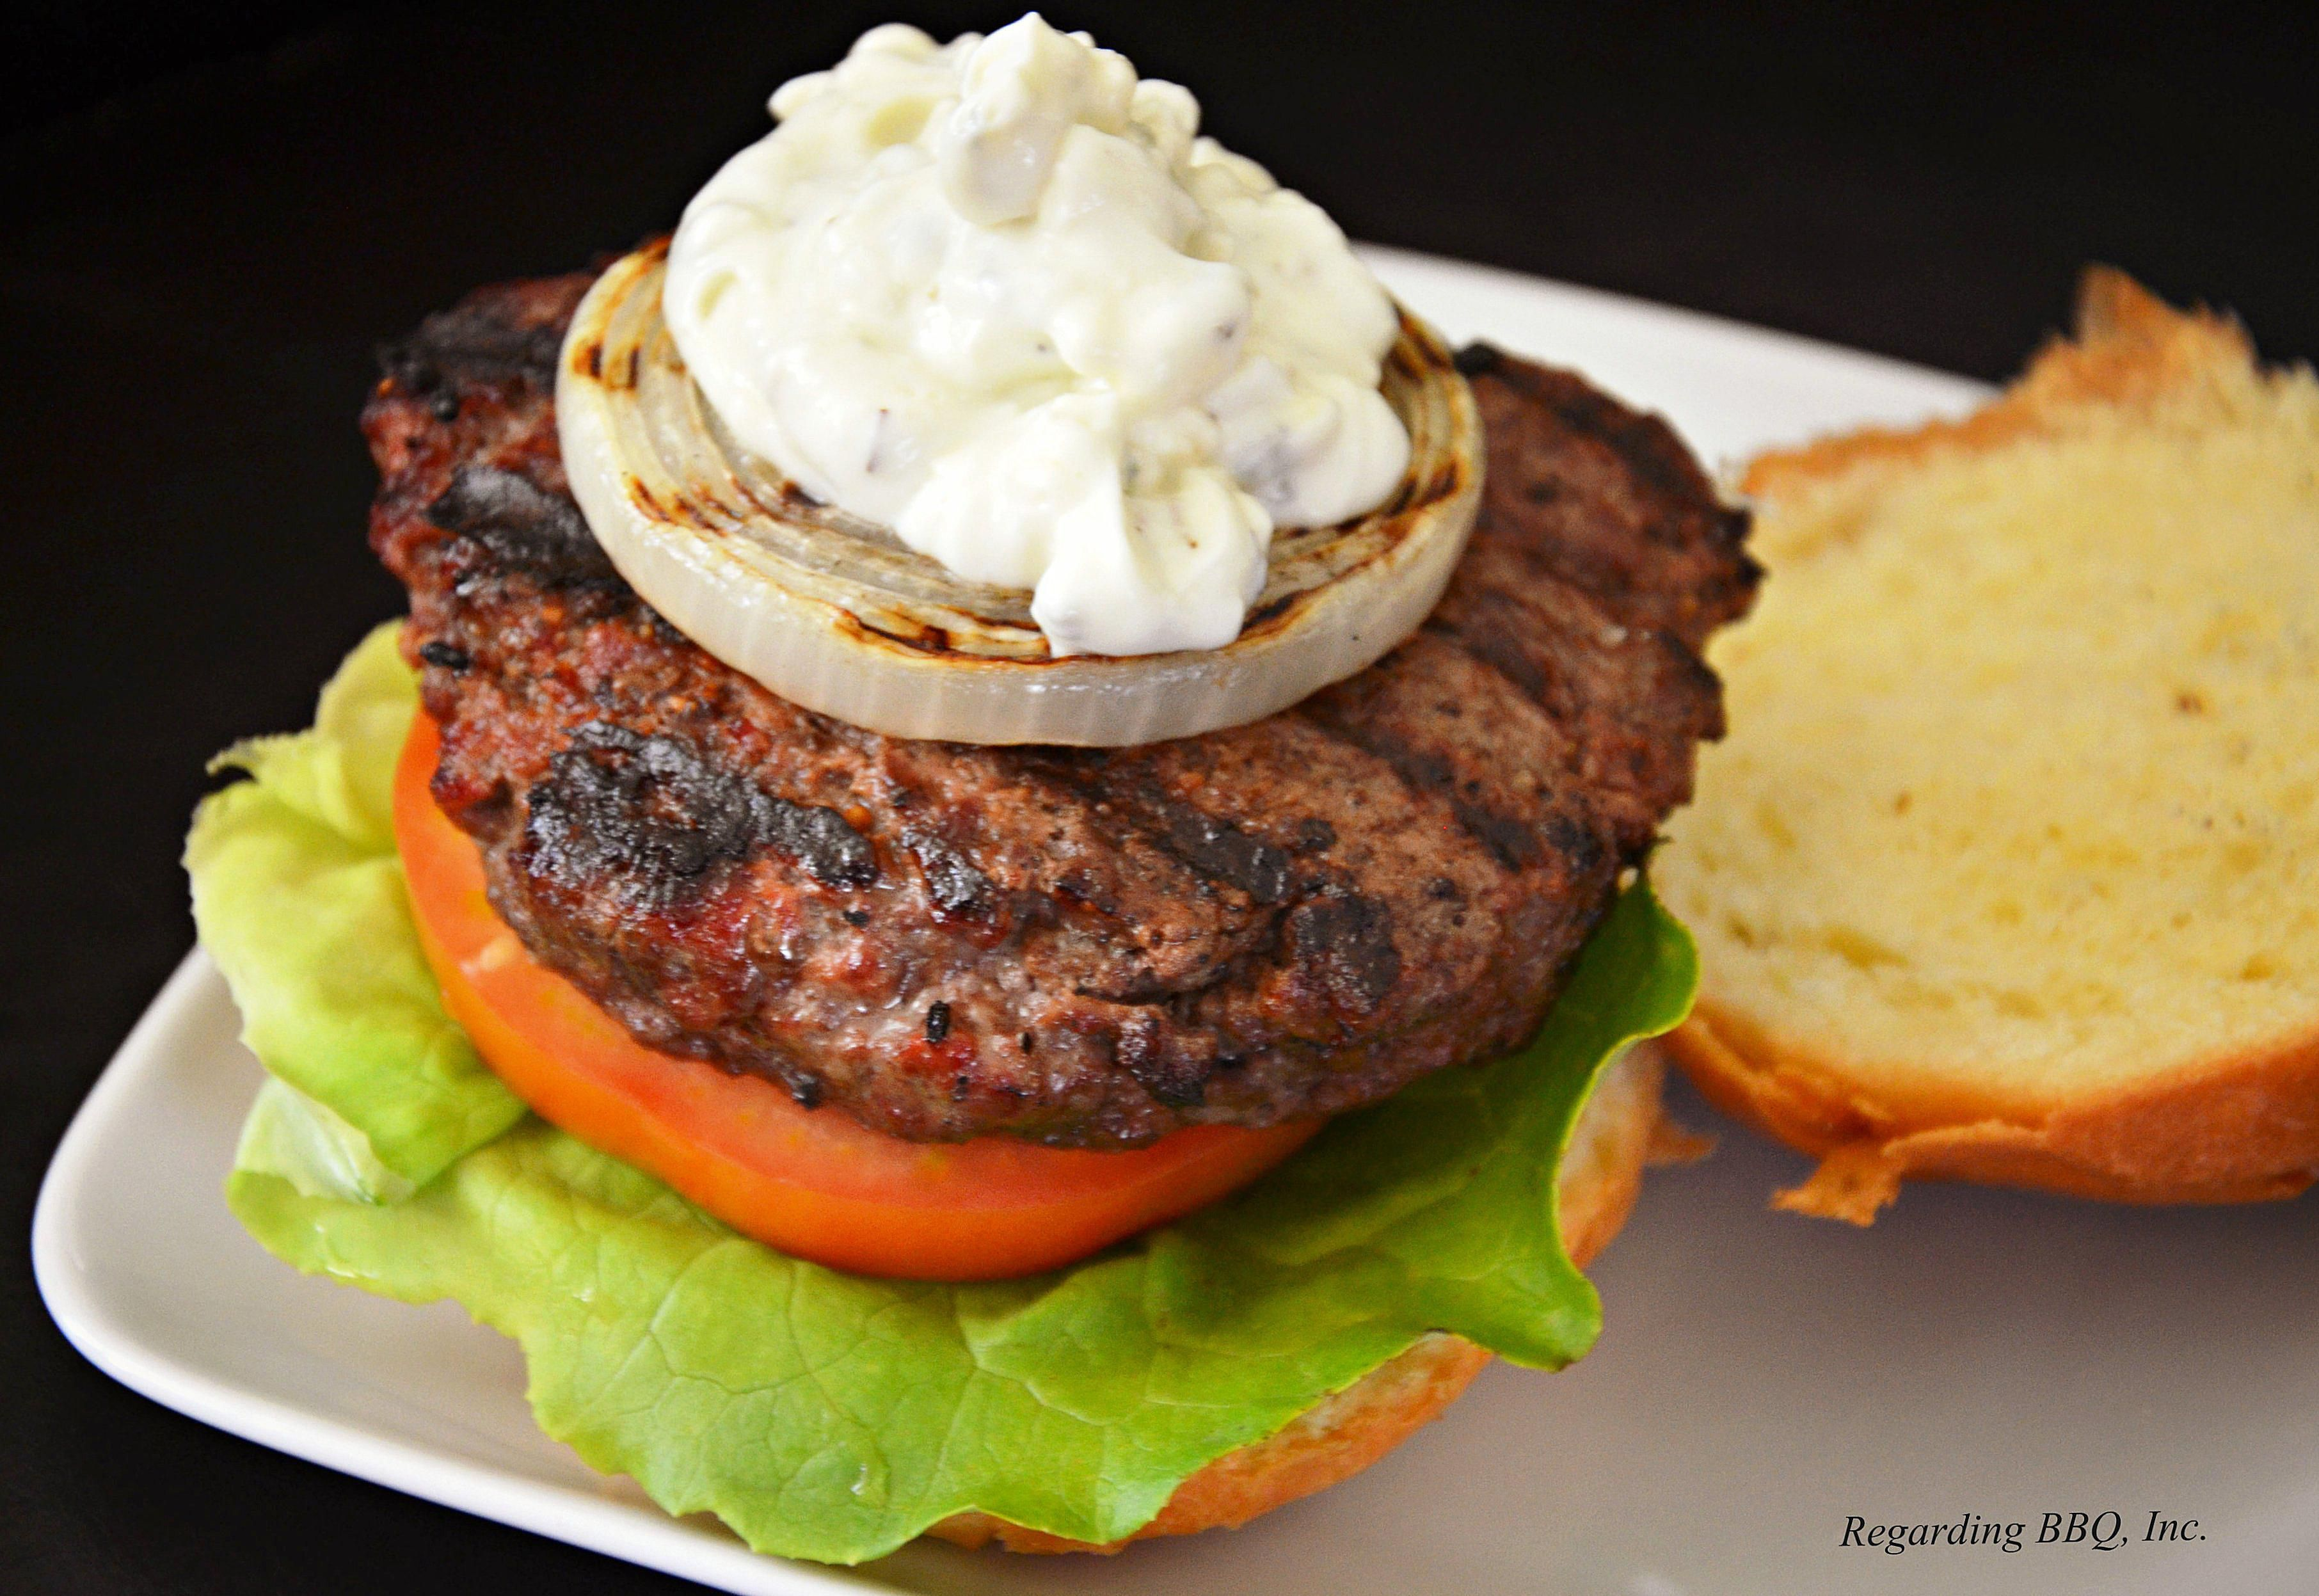 How To Cook Burger Onions